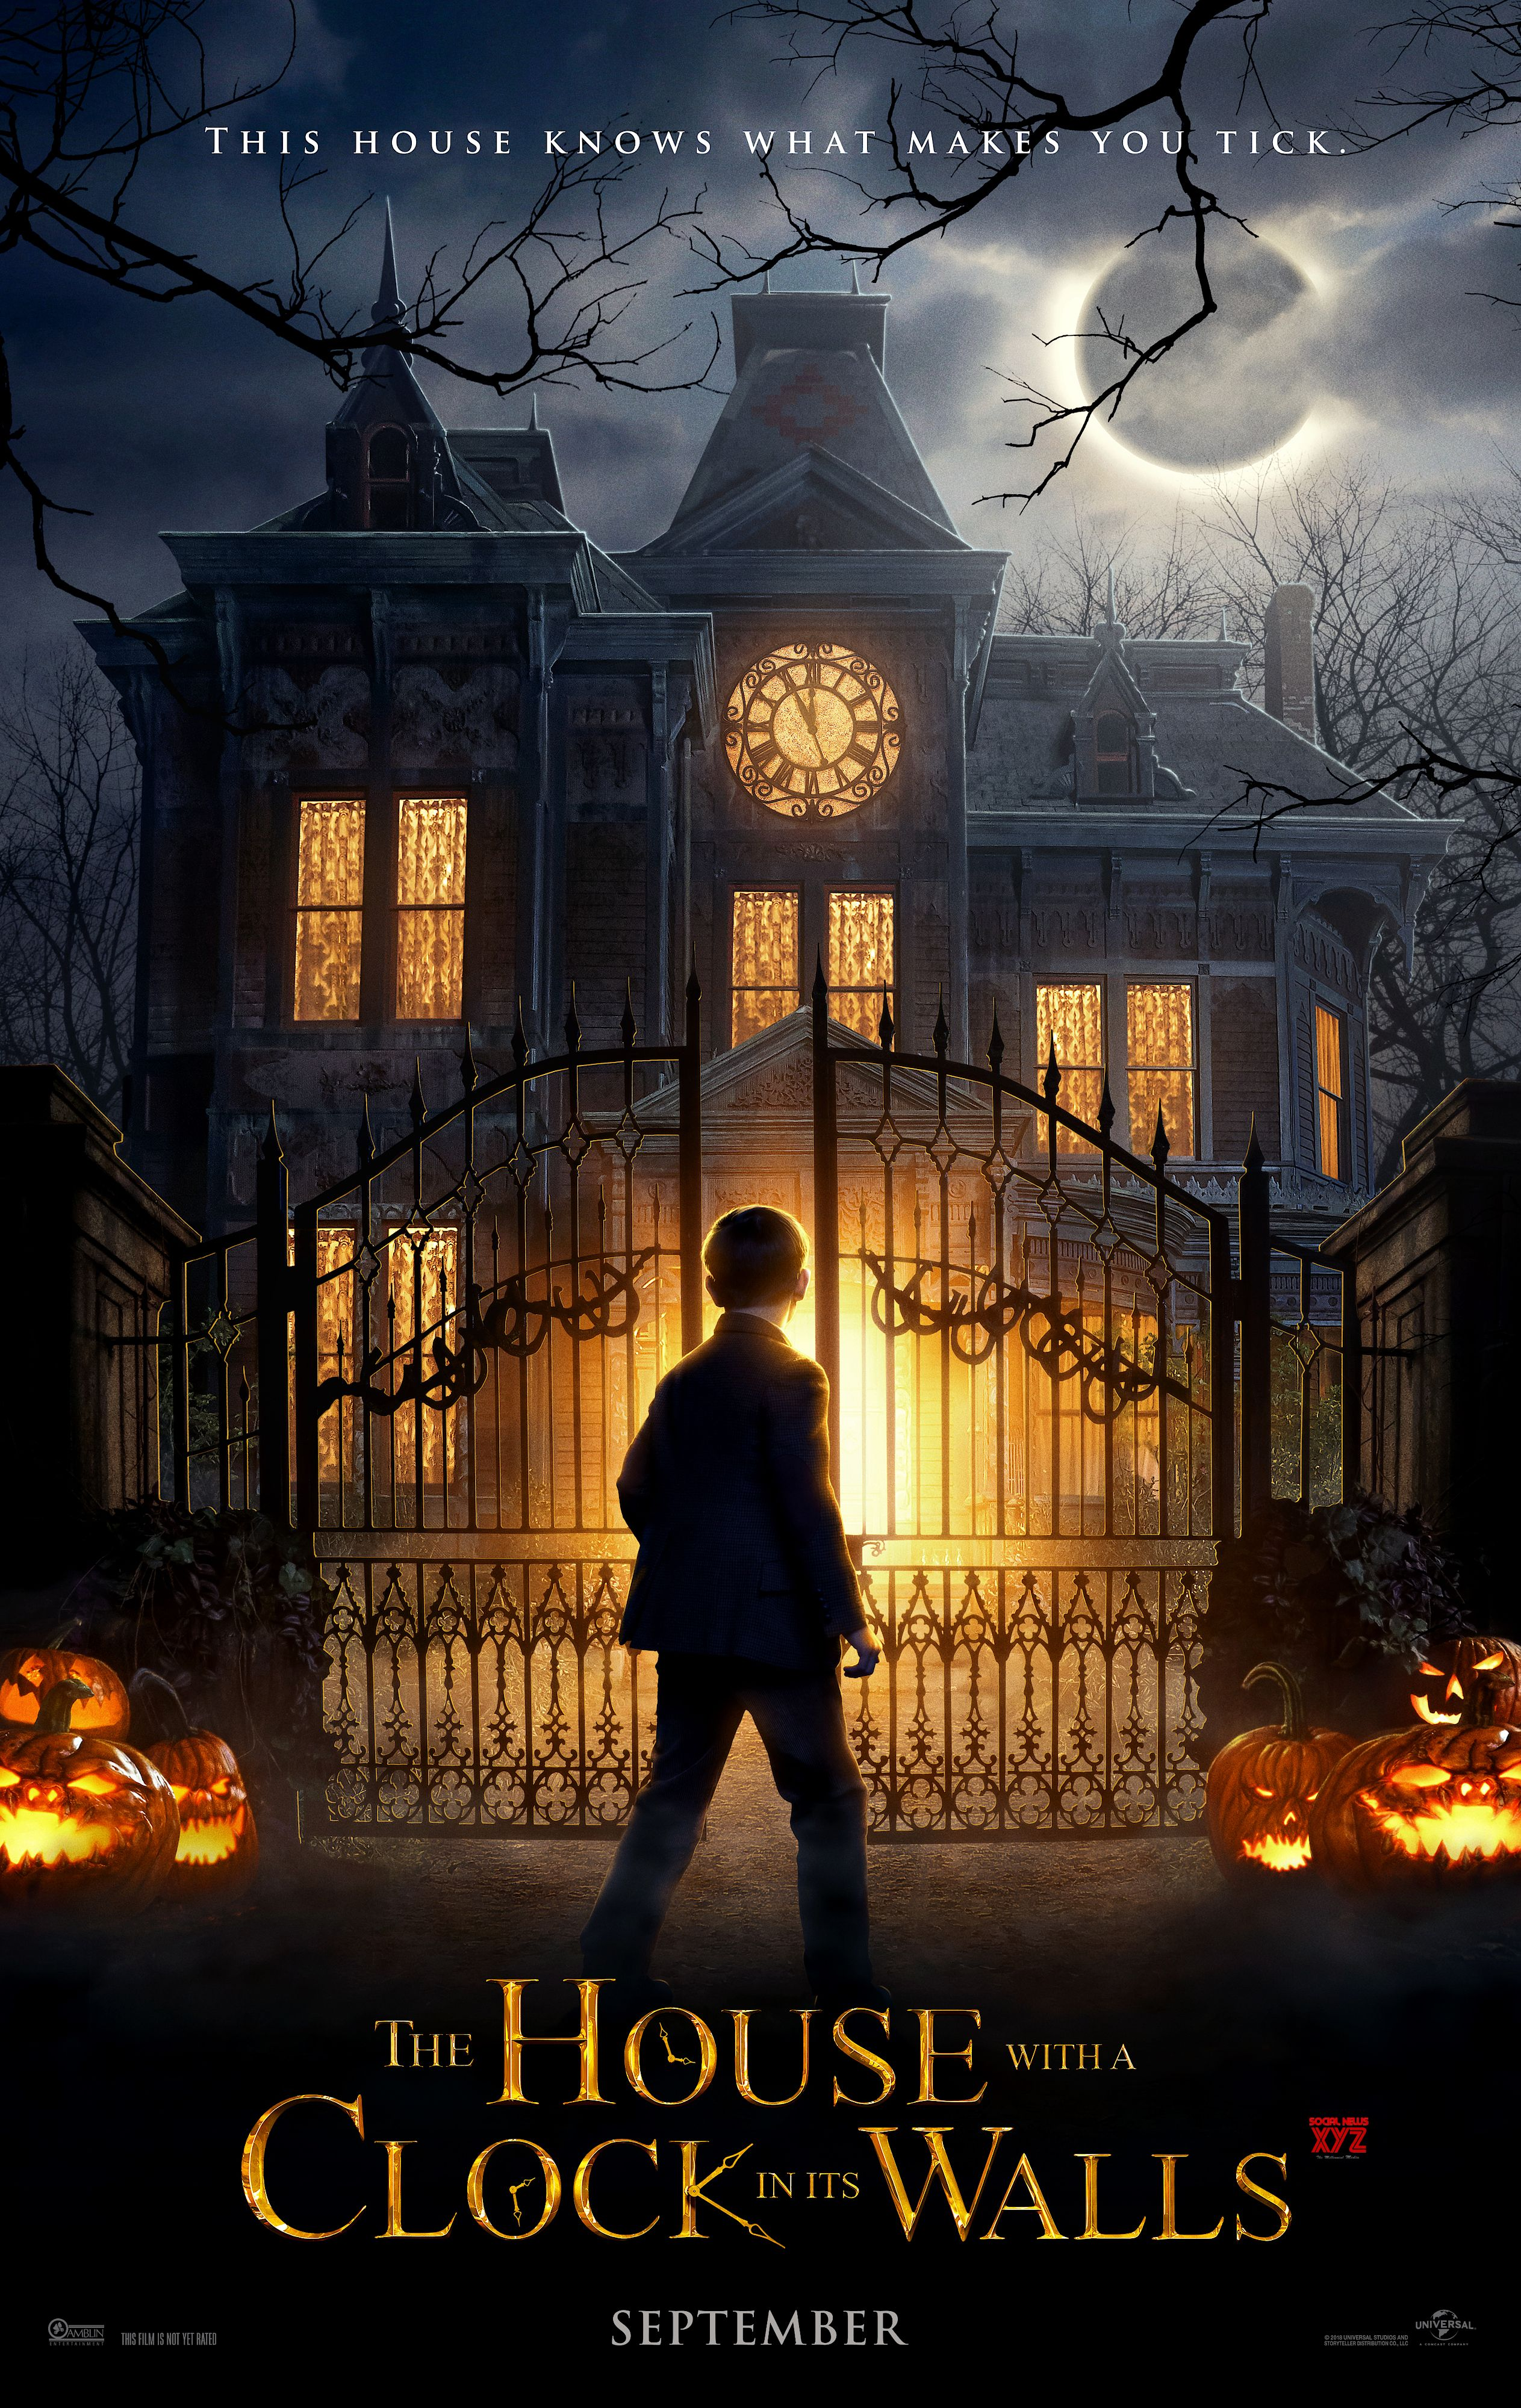 the trailer also shows some halloween goodness two jack black halloween movies this year be still my heart